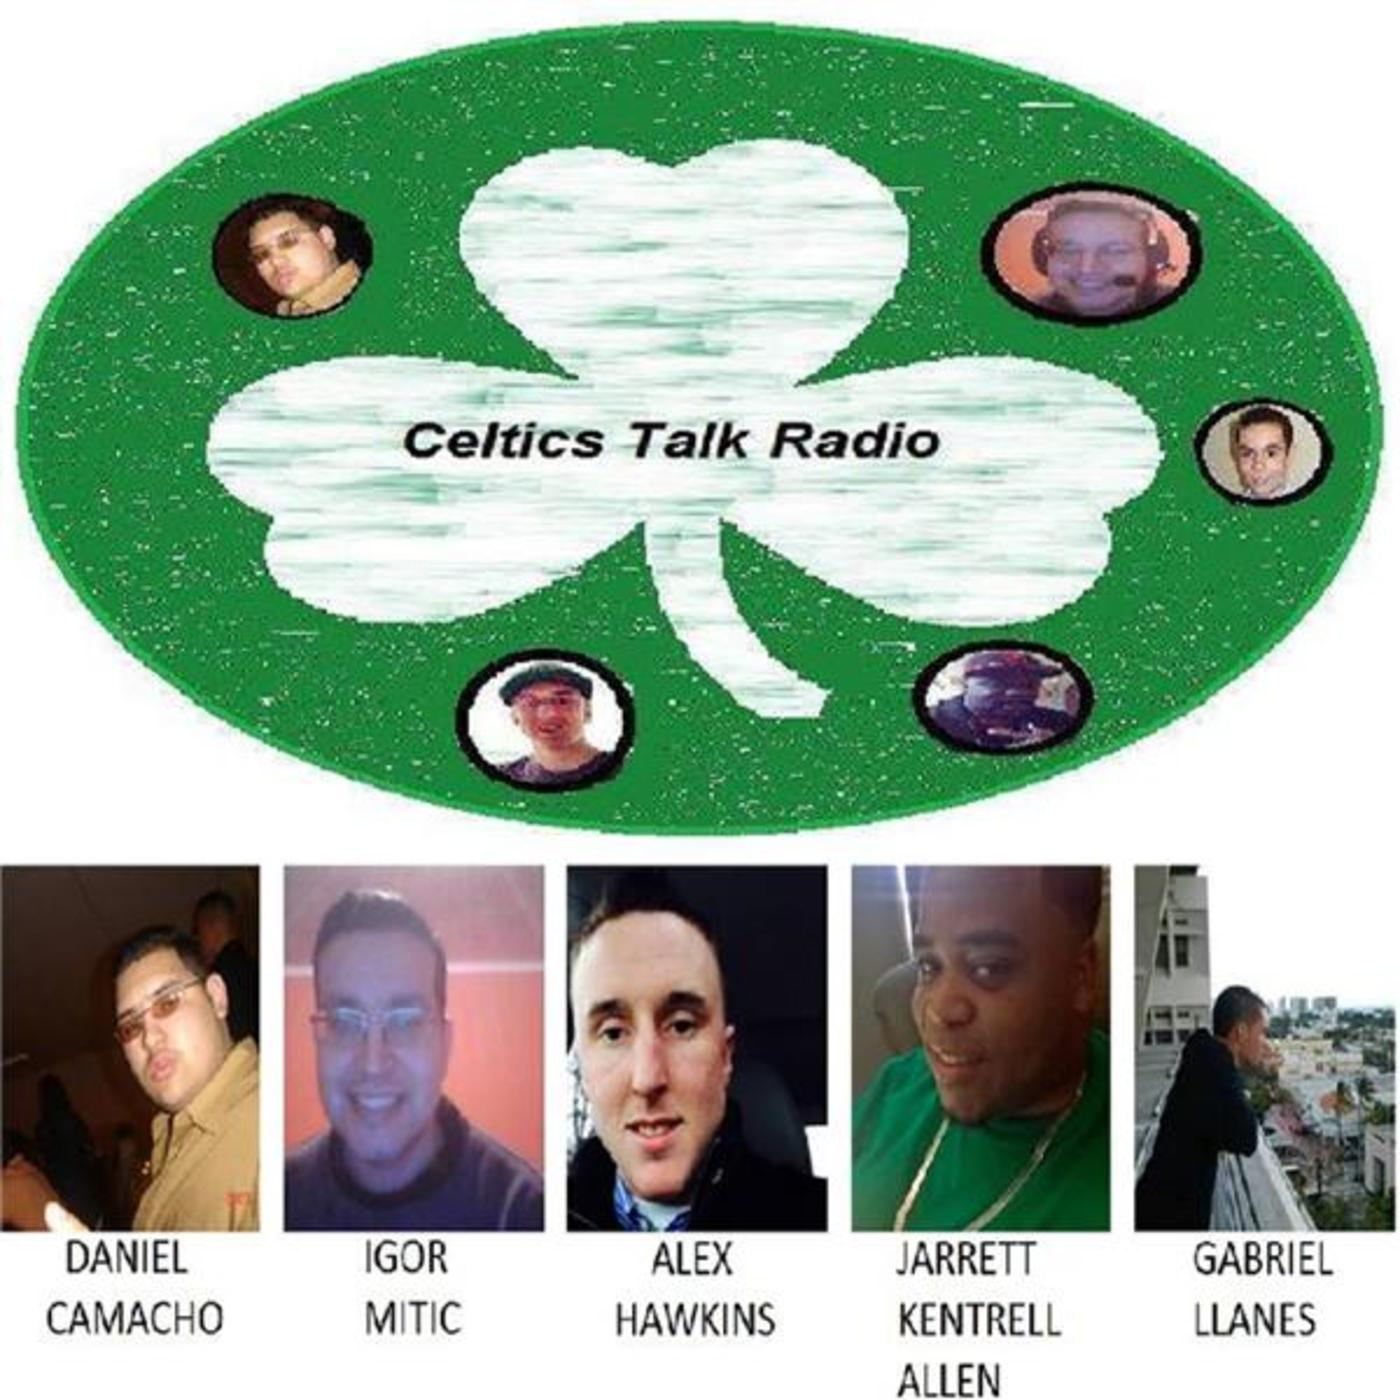 Celtics Talk Radio